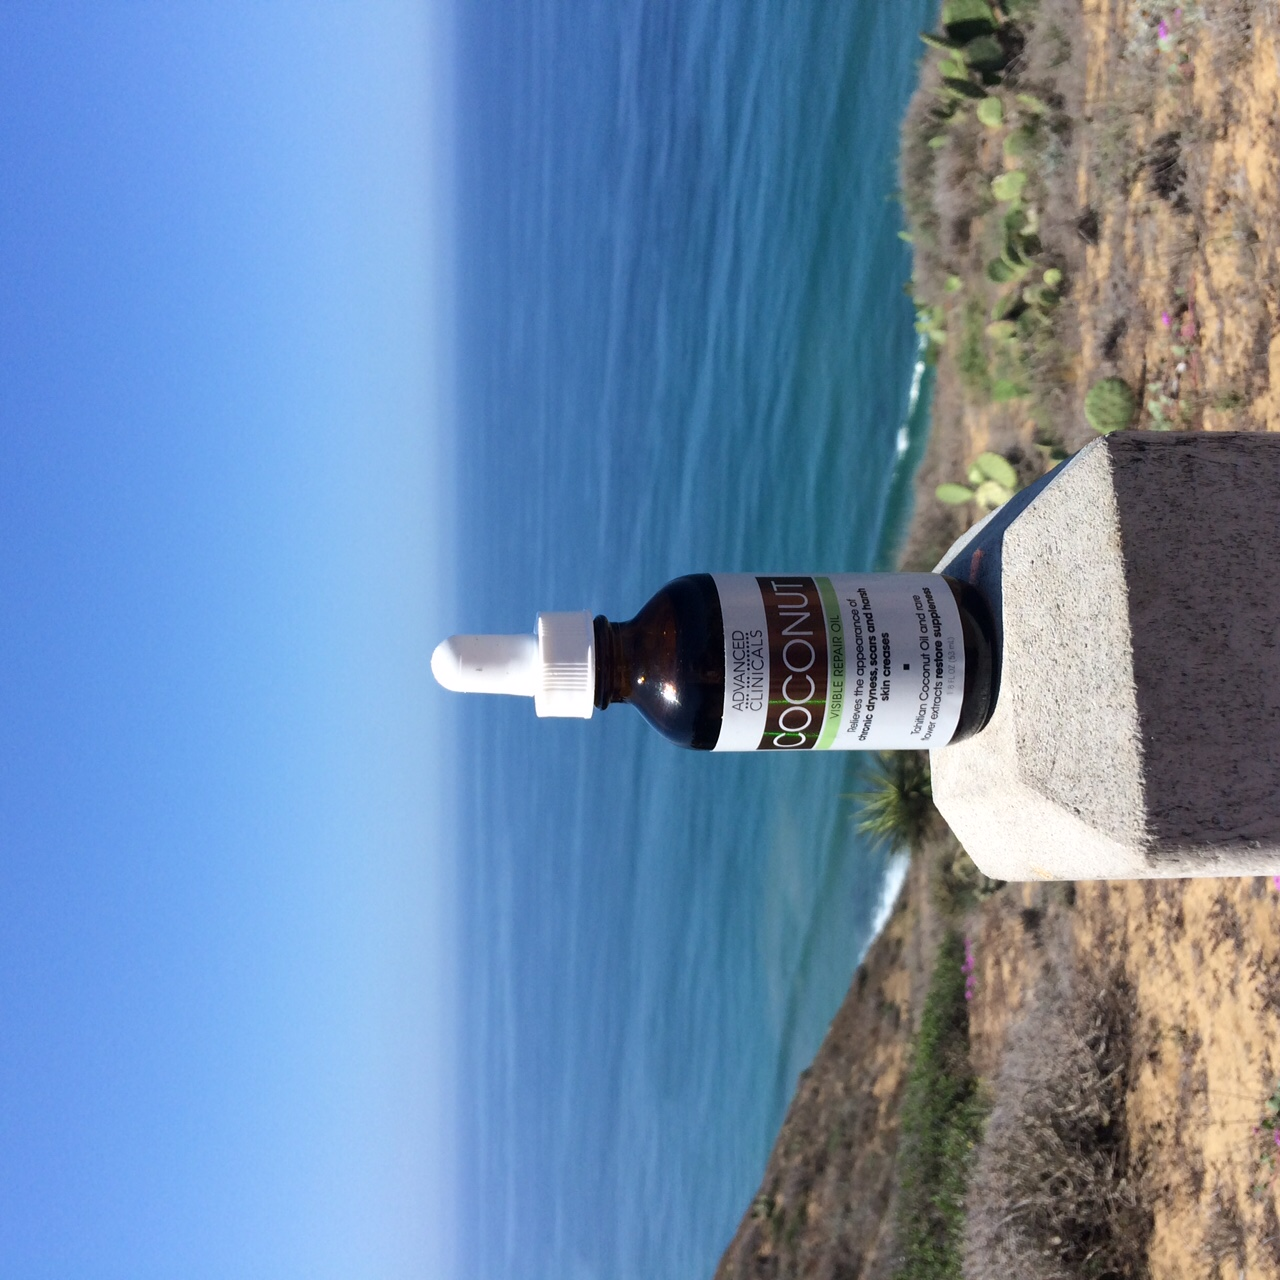 #ACfaceserum #hiking #SanDiego #beautybliss #concentratedskincare #CoconutOil #ACLove #SeptemerSerums